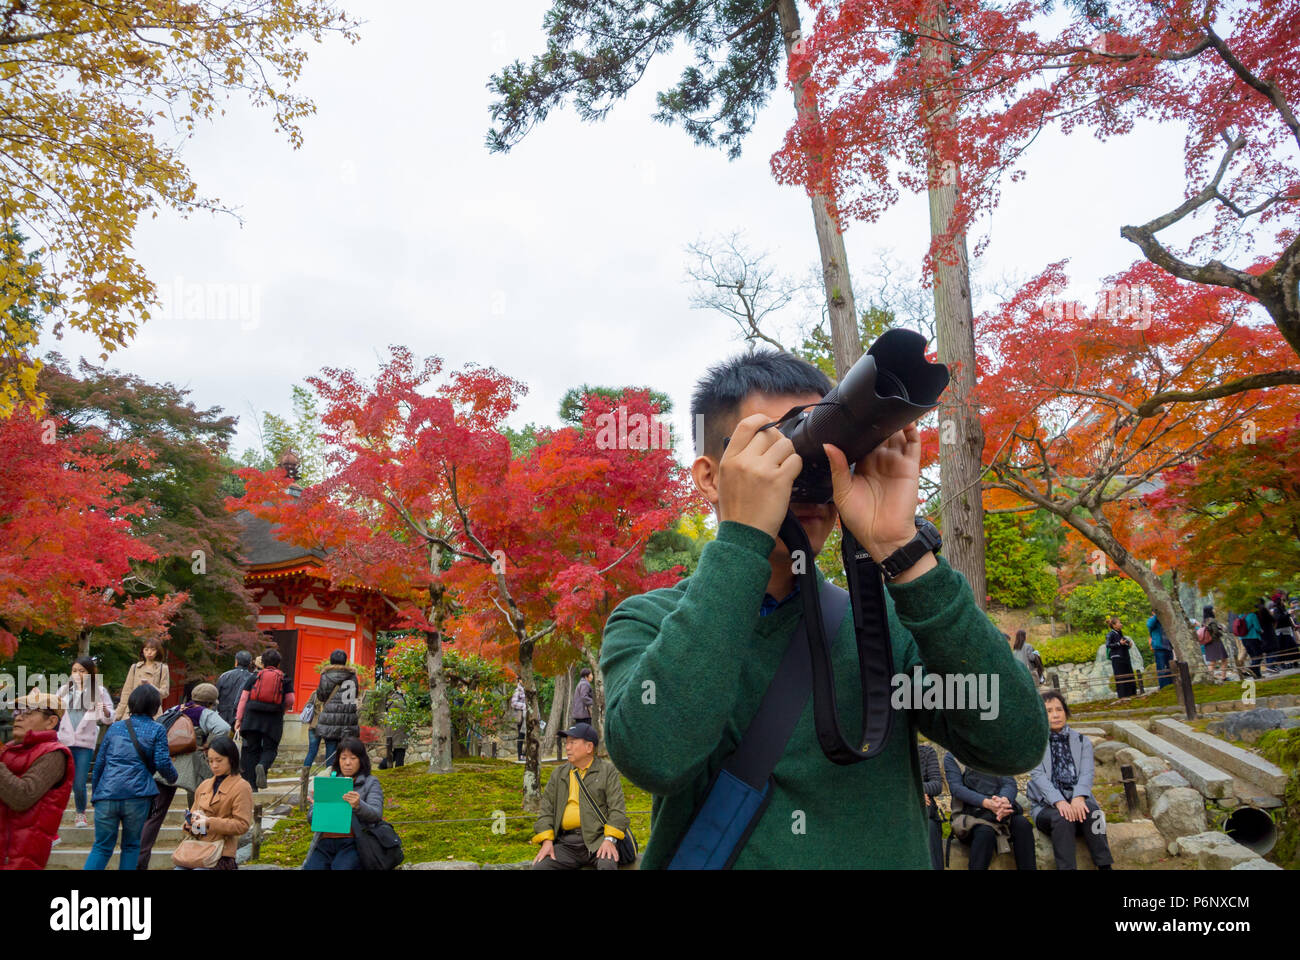 Asian tourist taking a photo of Koyo, Colored leaves of maple trees at Tofukuji temple, Kyoto, Japan - Stock Image